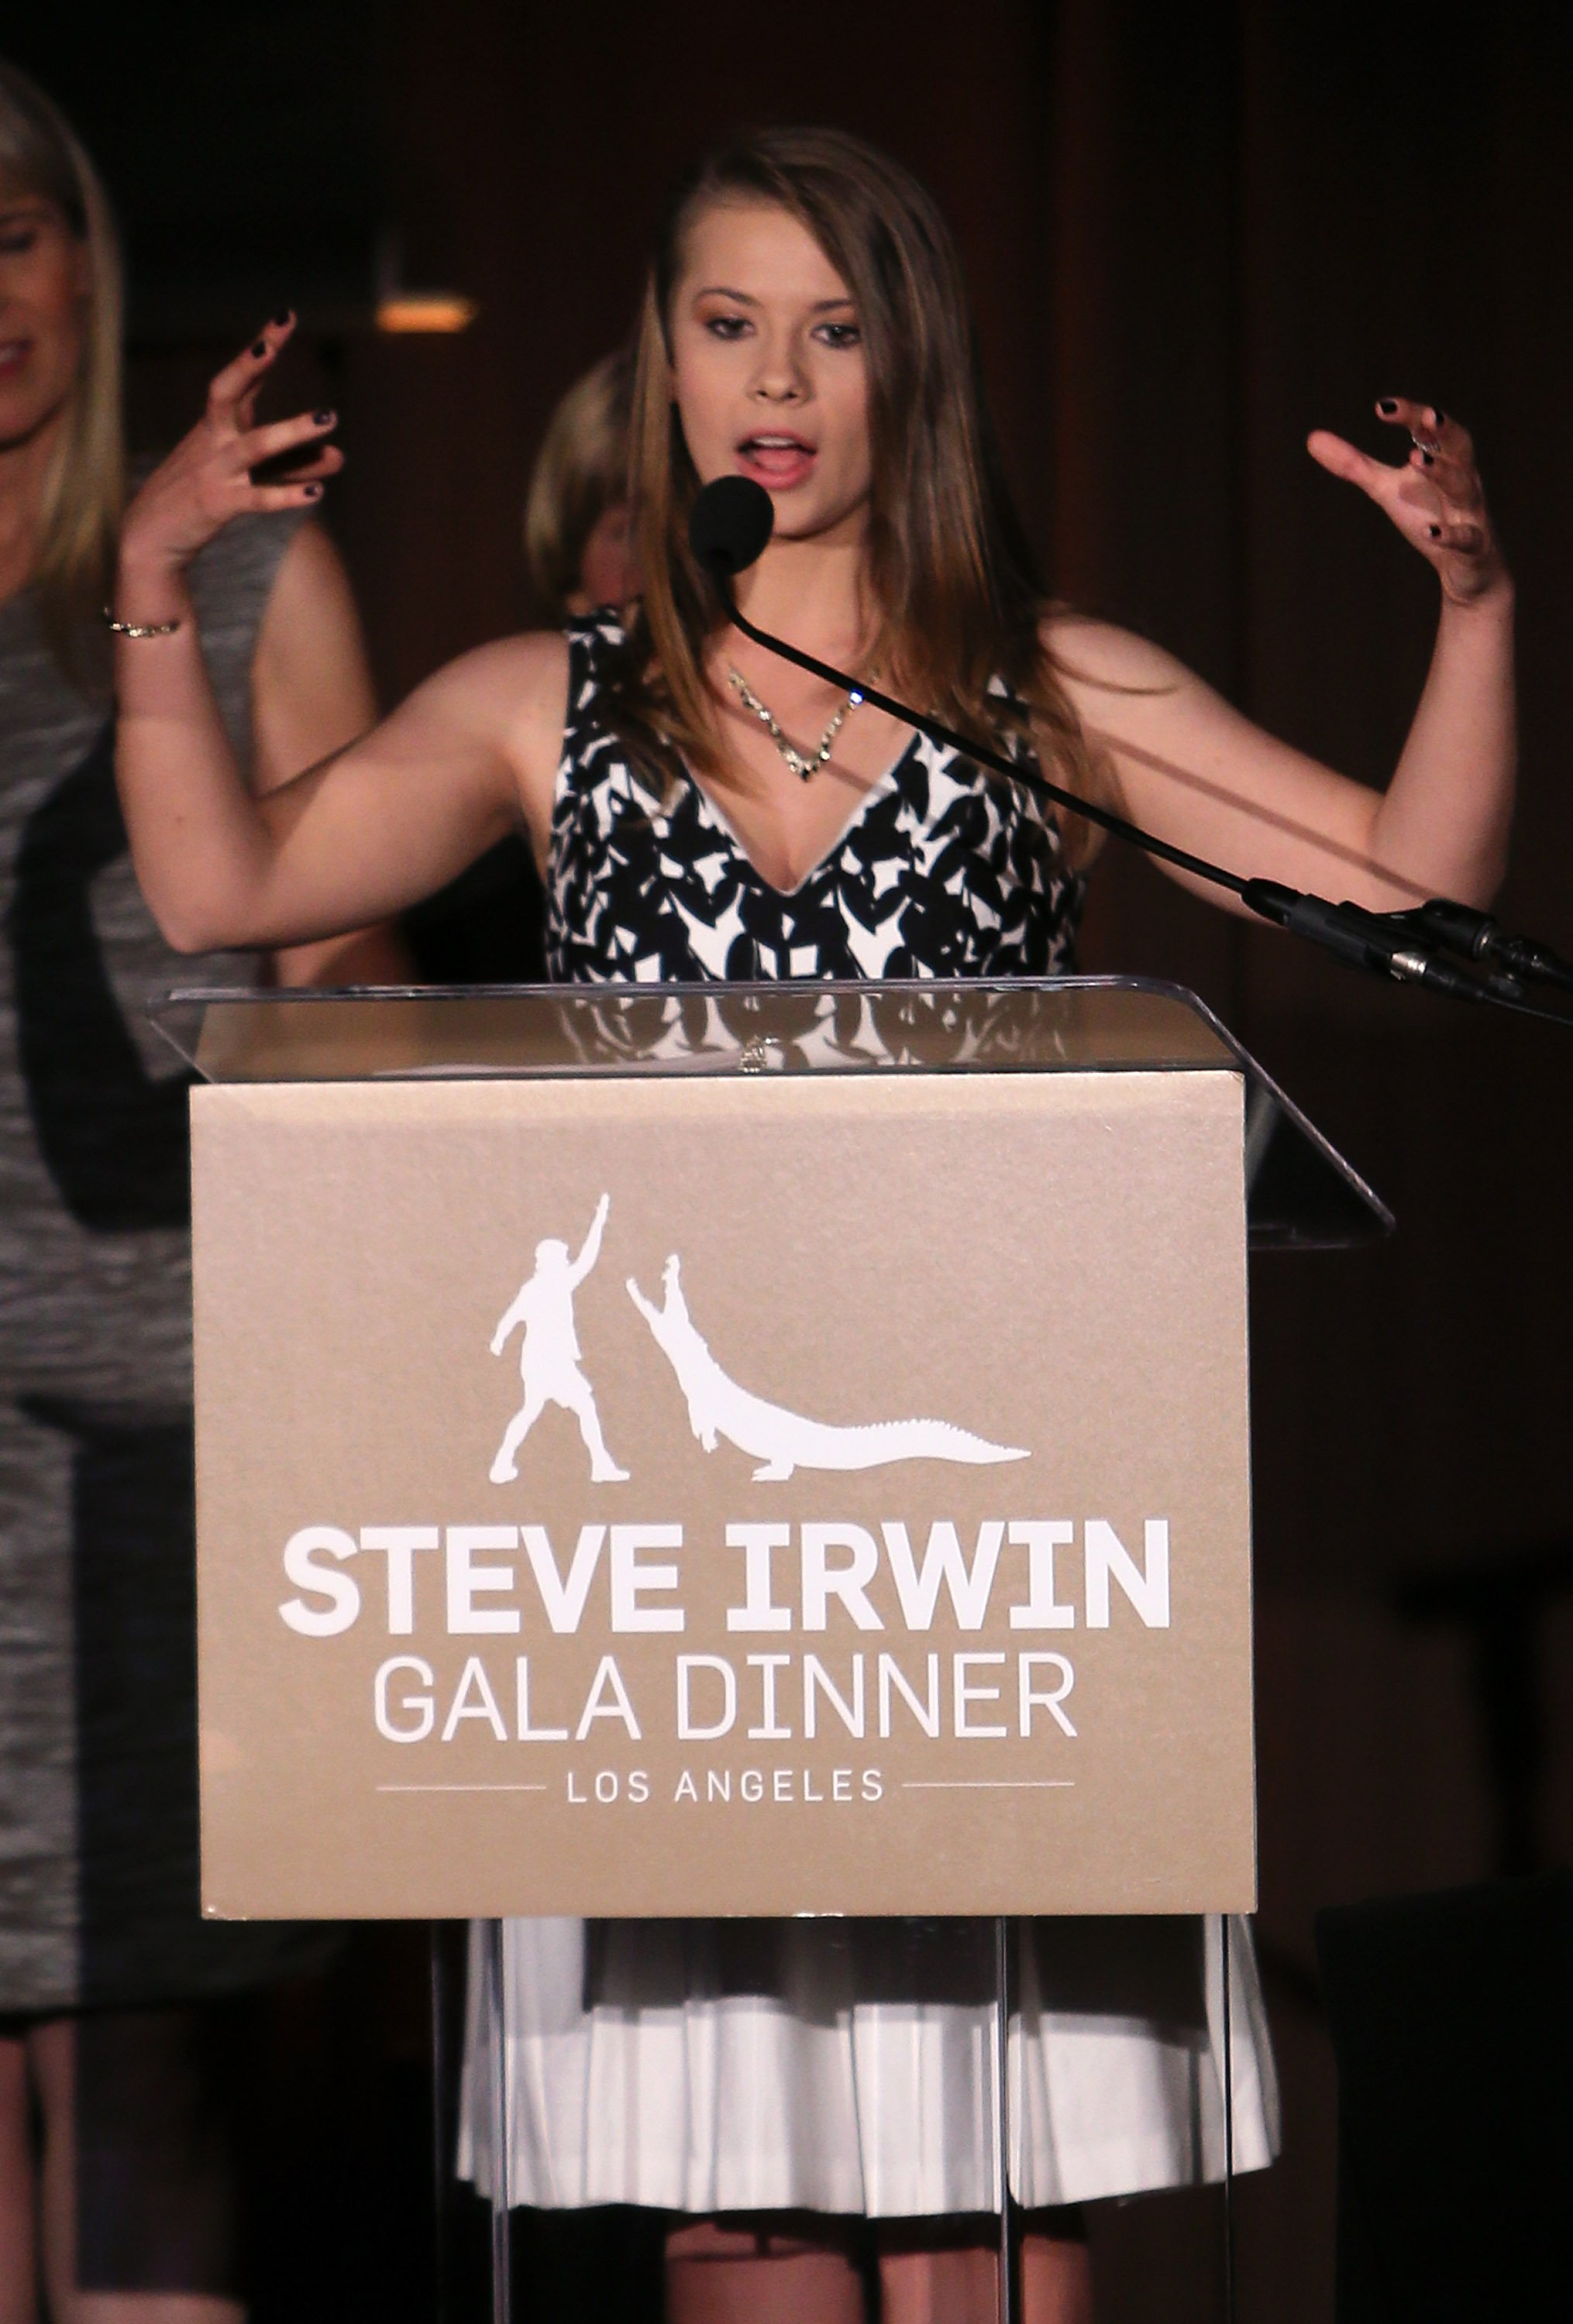 Bindi Irwin attends the Steve Irwin Gala Dinner at JW Marriott Los Angeles at L.A. LIVE on May 21, 2016   Photo: Getty Images